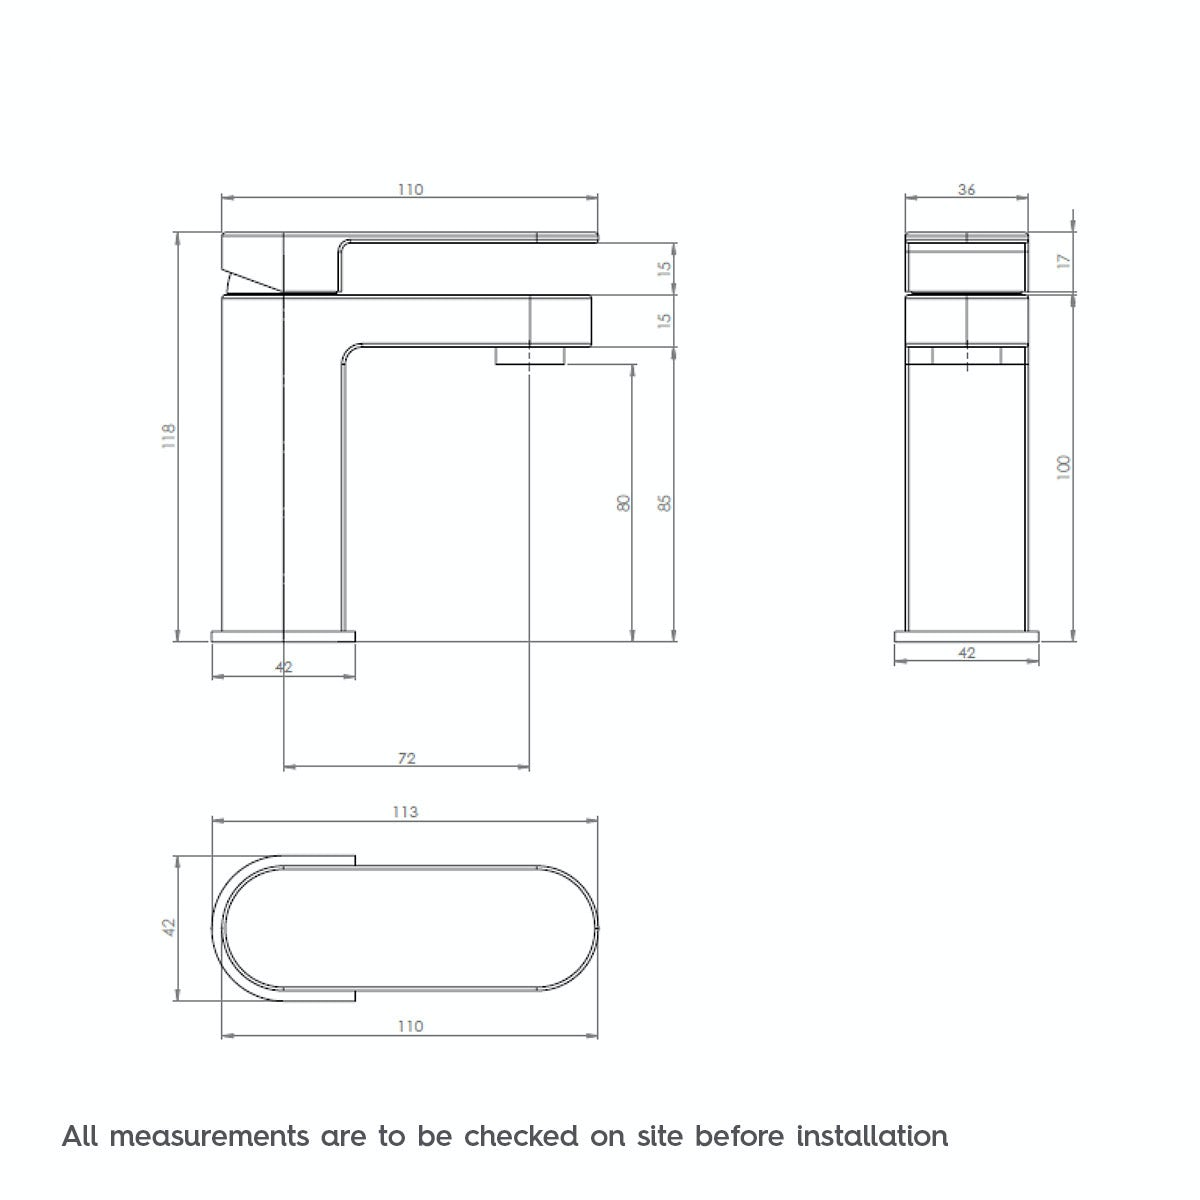 Dimensions for Mode Hardy cloakroom basin mixer tap